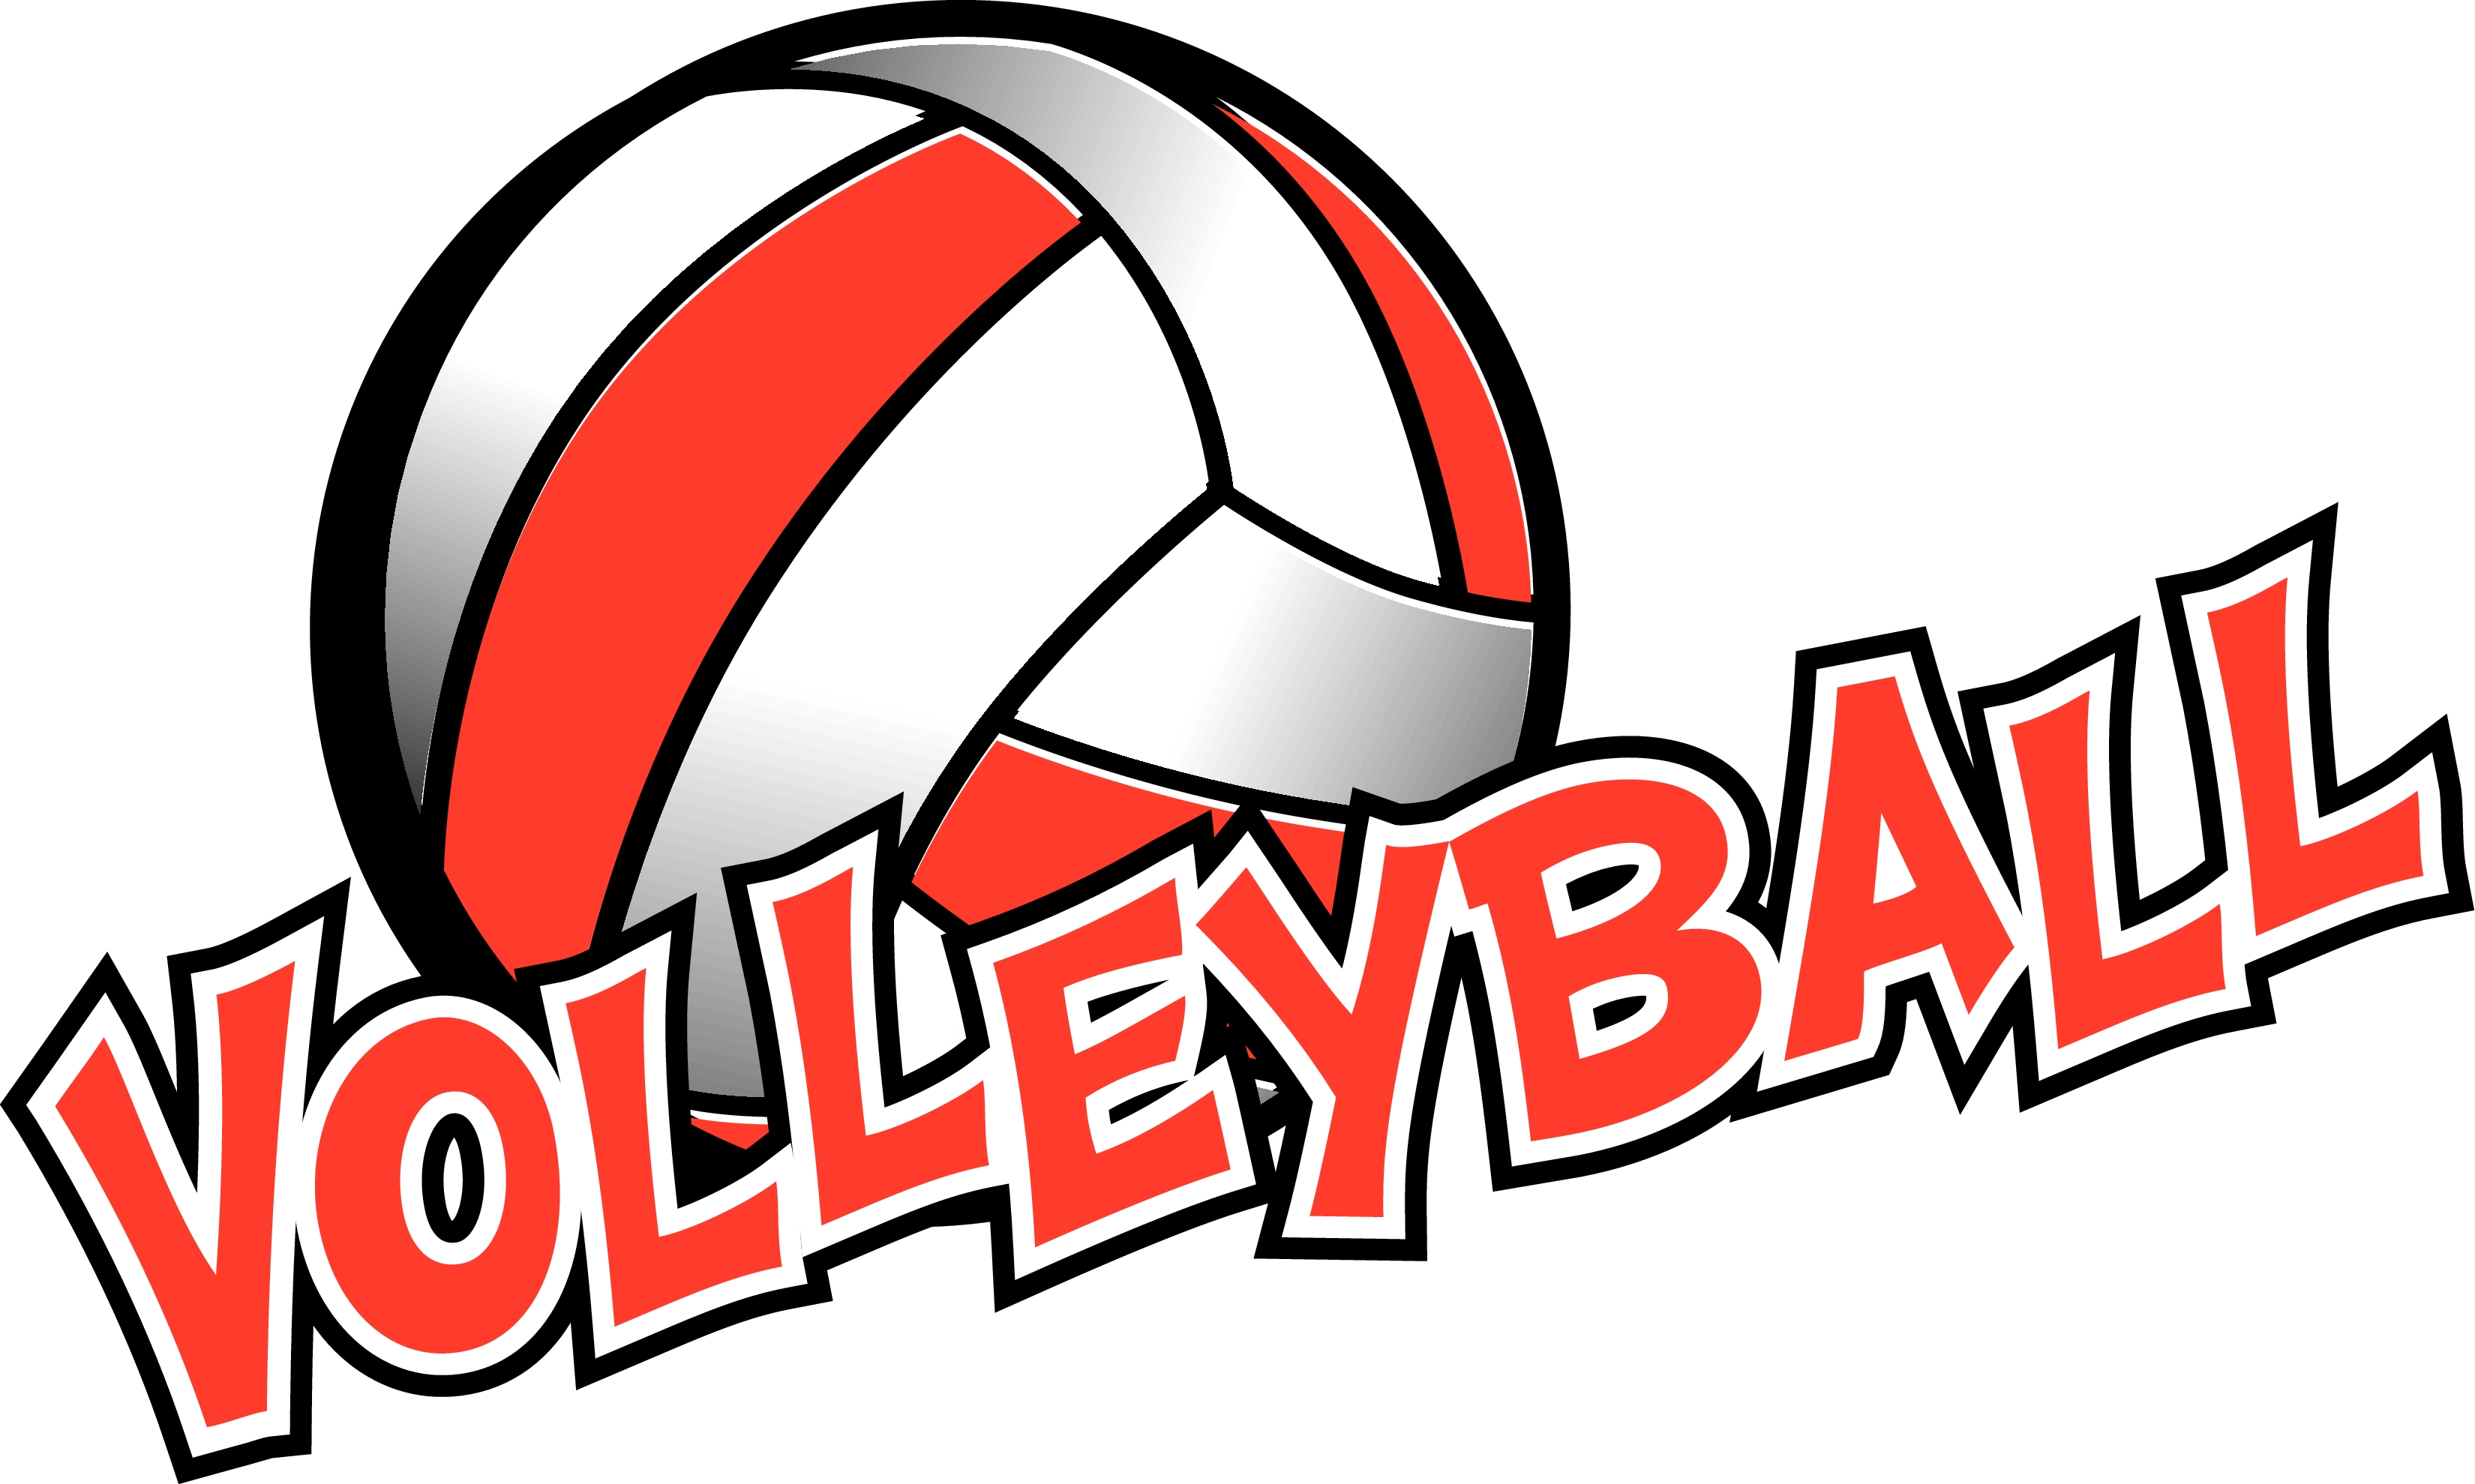 volleyball words volleyball in red and white